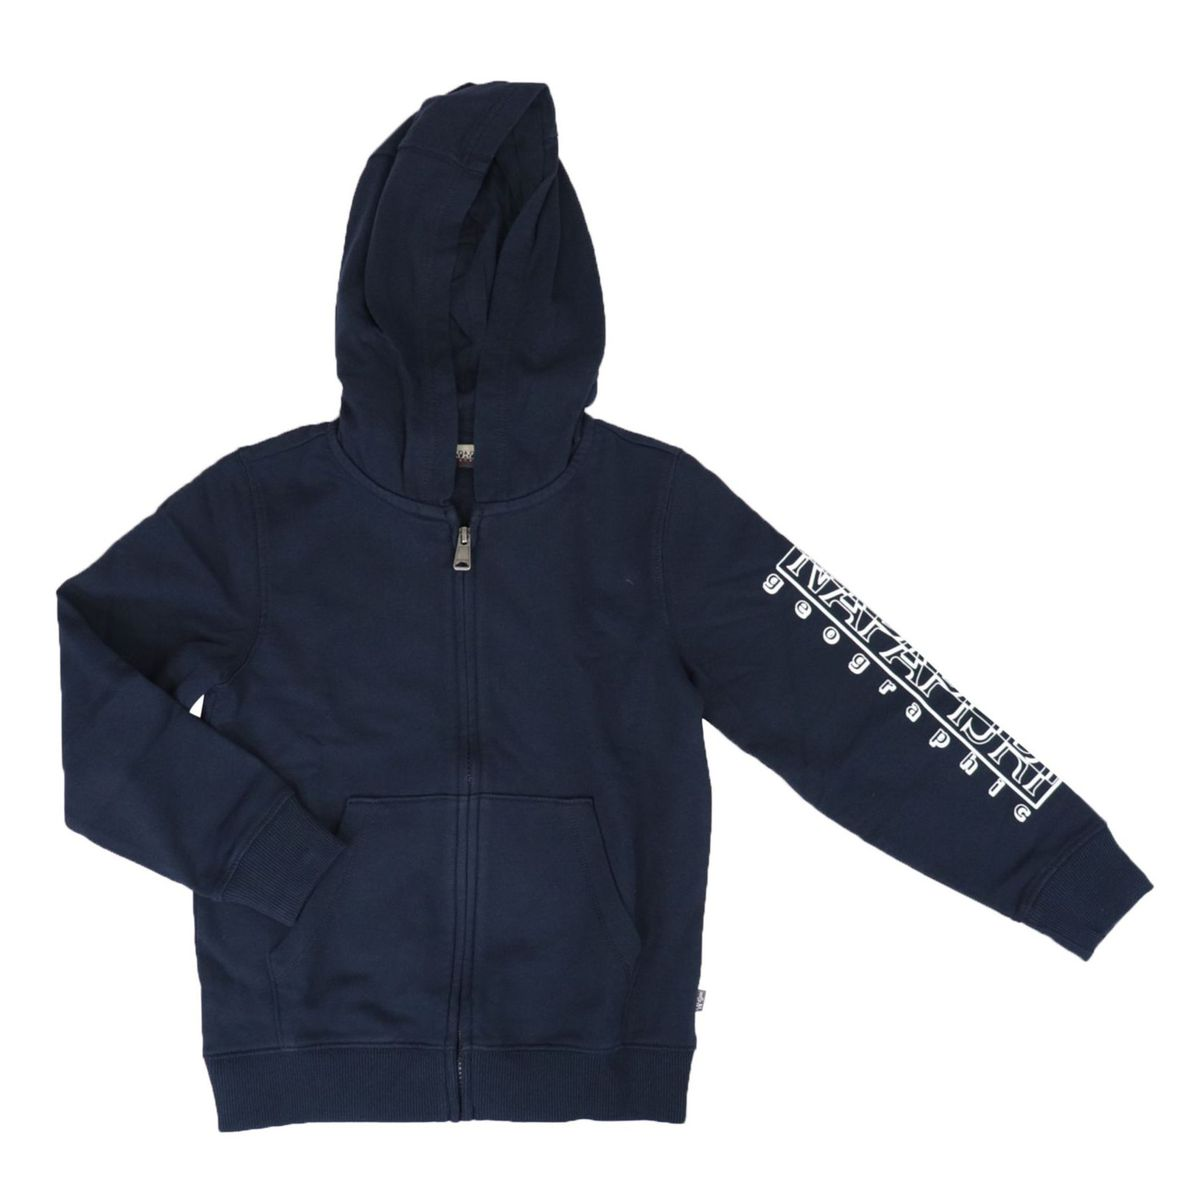 Full zip cotton sweatshirt with hood with logo print on the sleeve Blue NAPAPIJRI